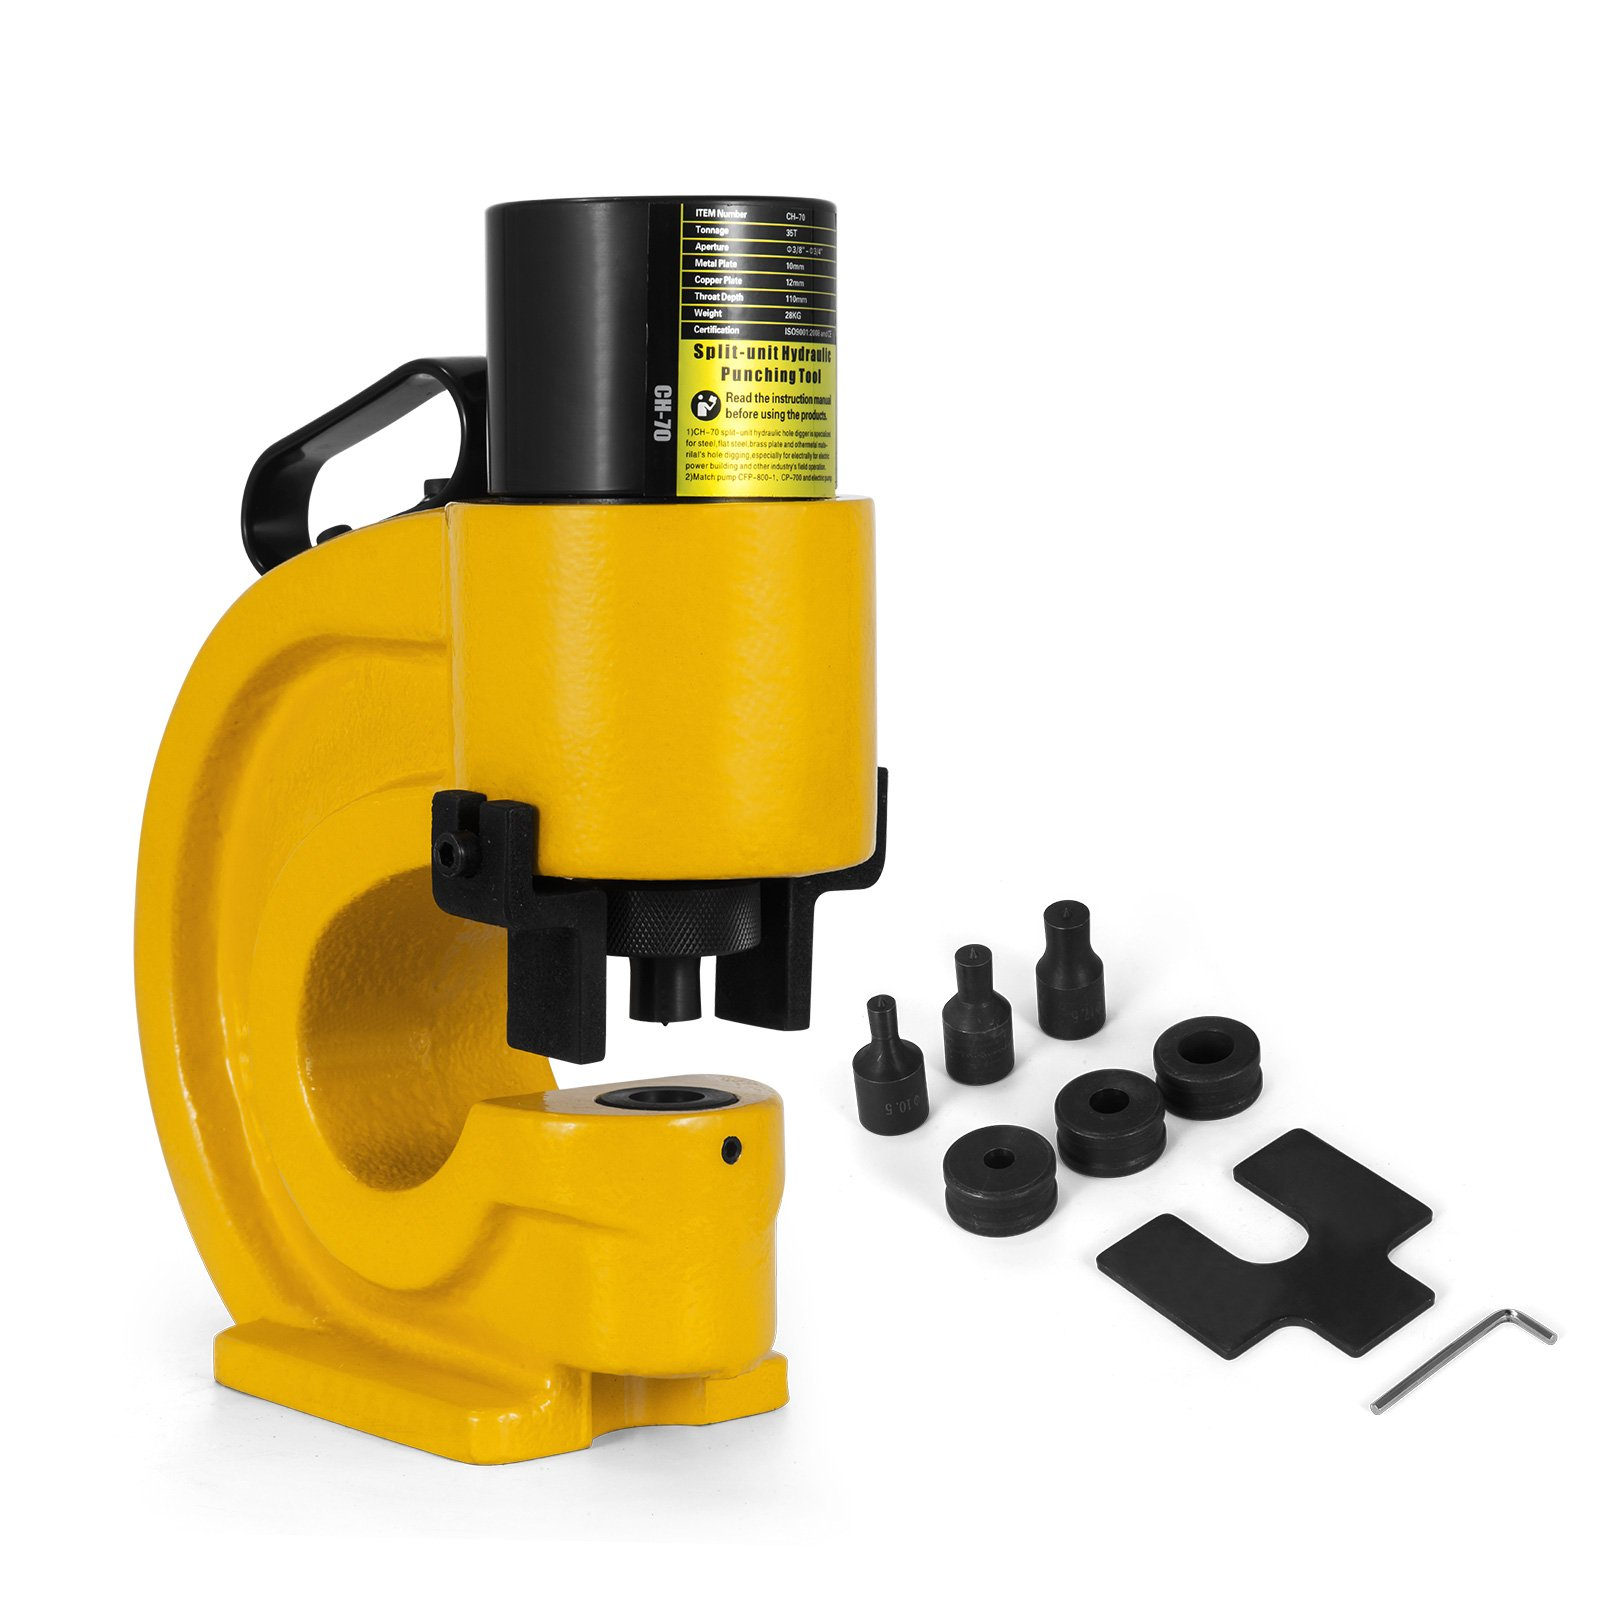 Happybuy CH-70 Hydraulic Hole Punching Tool 35T Hole Digger Force Puncher Smooth Hole Puncher For Iron Plate Copper Bar Aluminum Stainless Steel by Happybuy